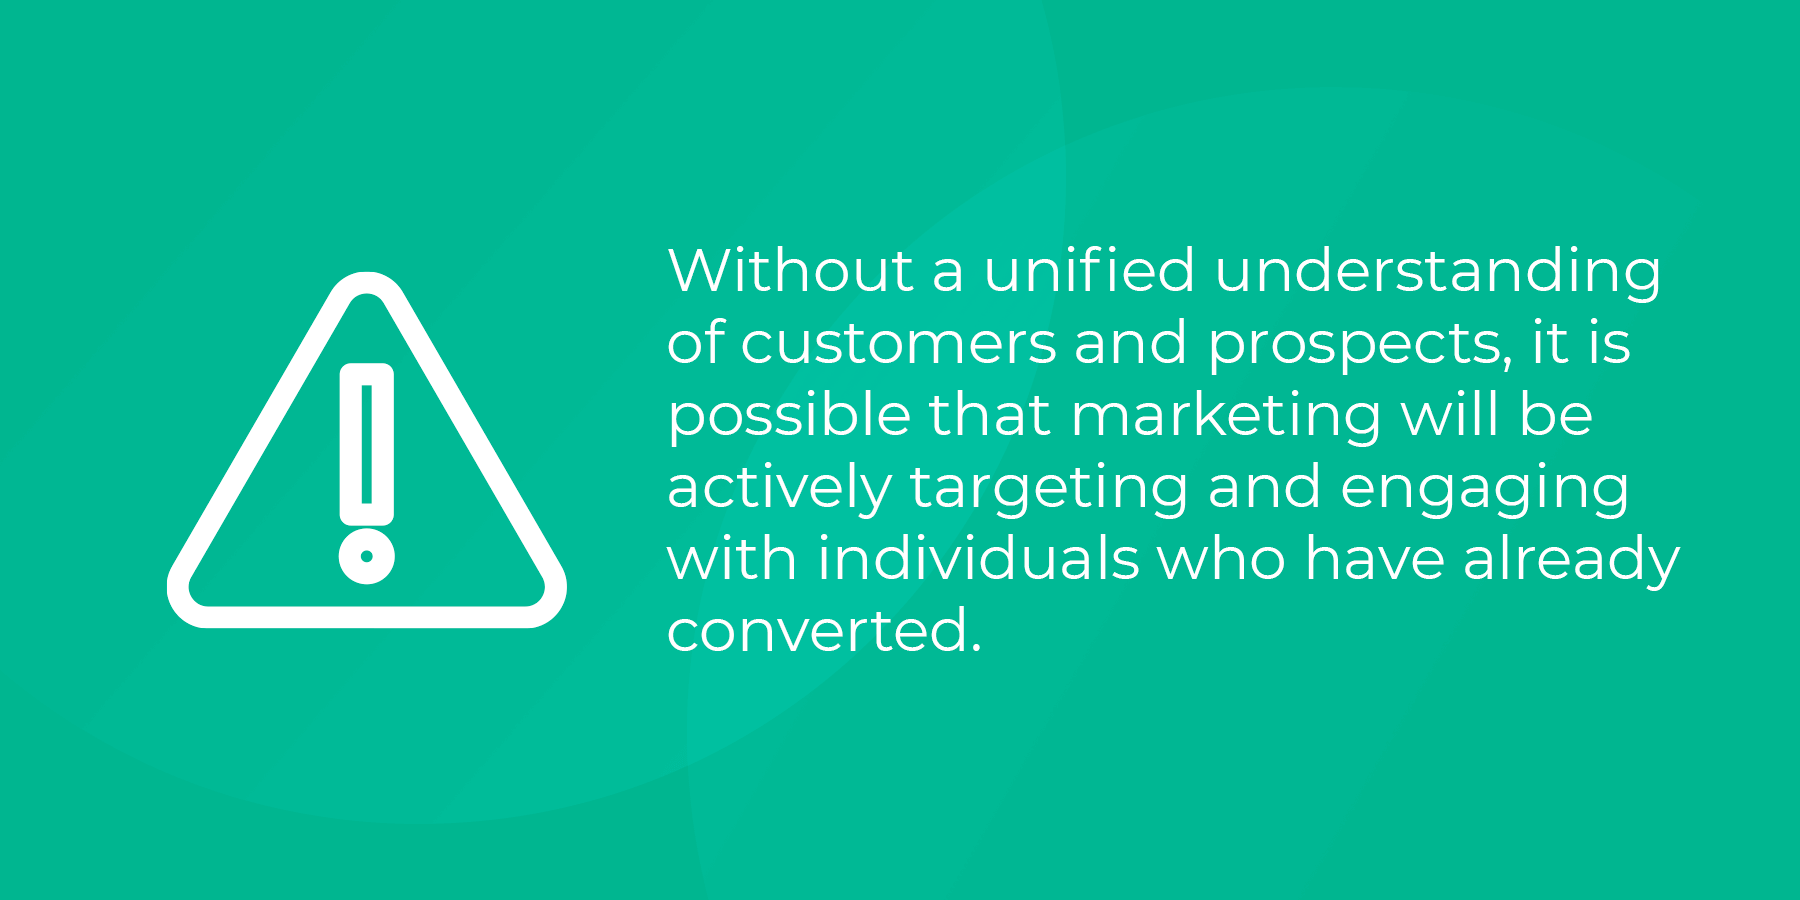 Without a unified understanding of customers and prospects, it i s possible that marketing will be targeting and engaging individuals who have already converted